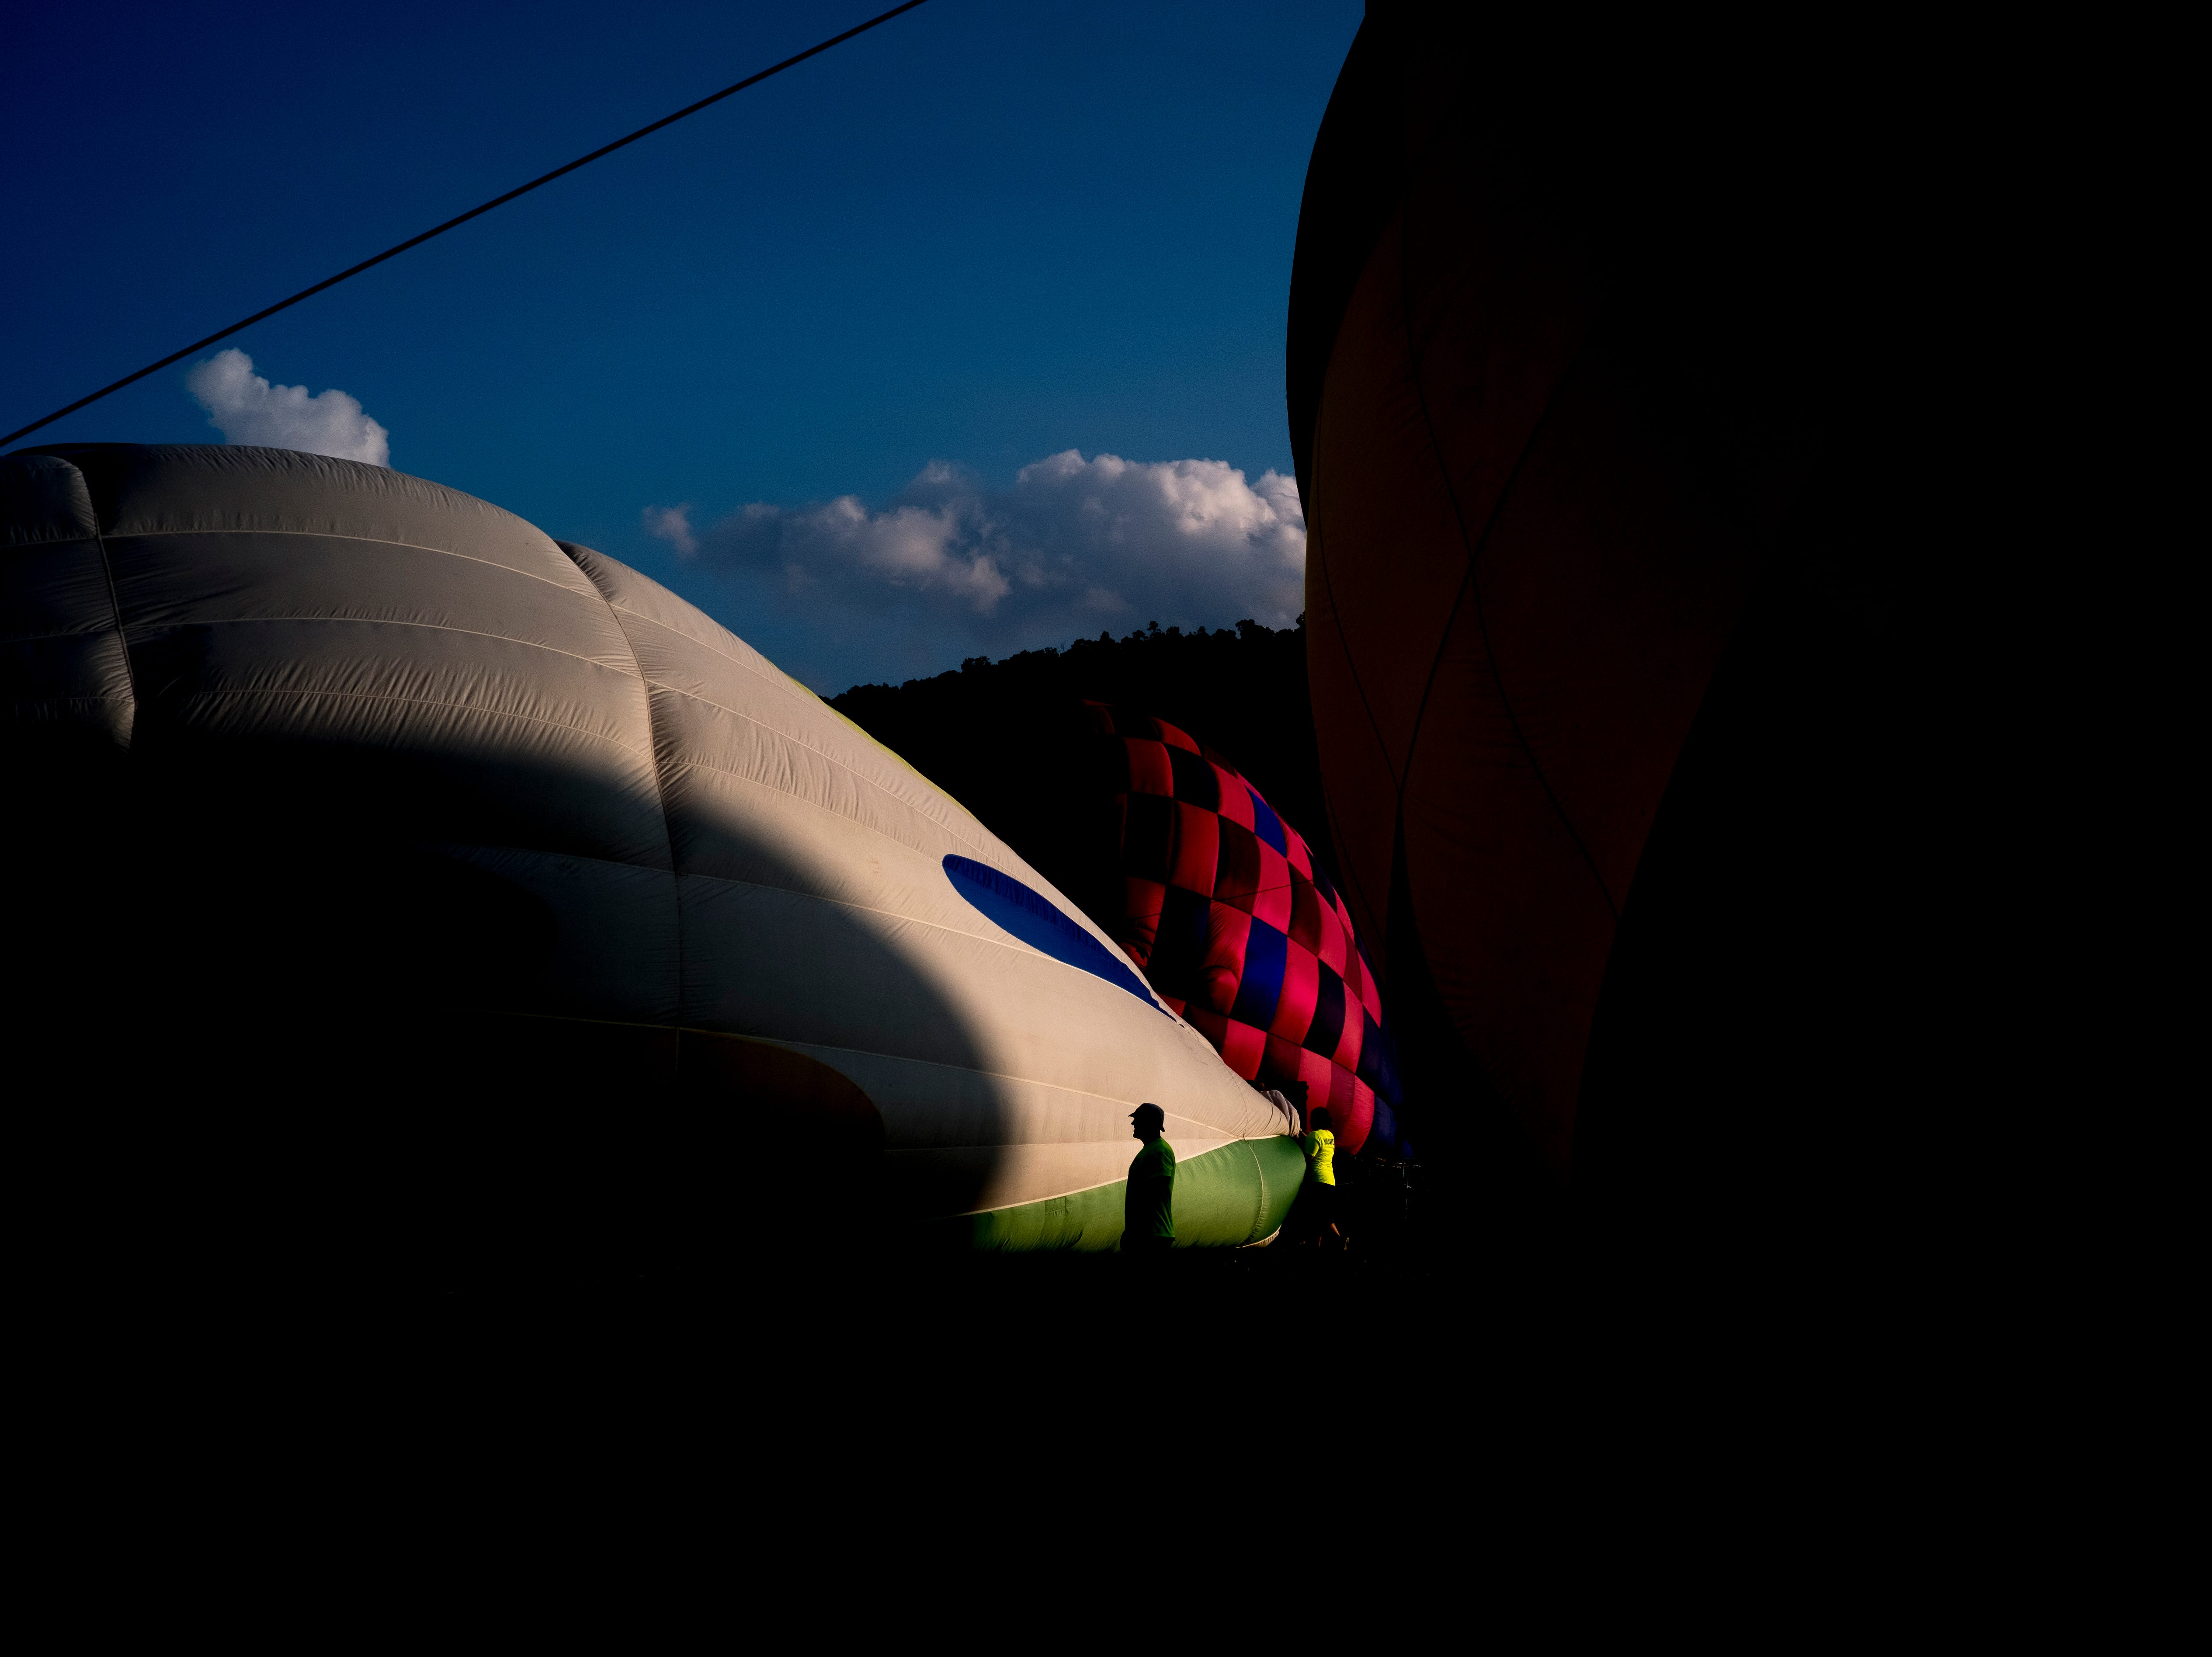 A worker passes by an inflating hot air balloon at the second annual Smoky Mountain Balloon Festival in Townsend, Tennessee on Saturday, August 18, 2018. The festival featured several hot air balloons, food trucks, wine tasting and live entertainment.